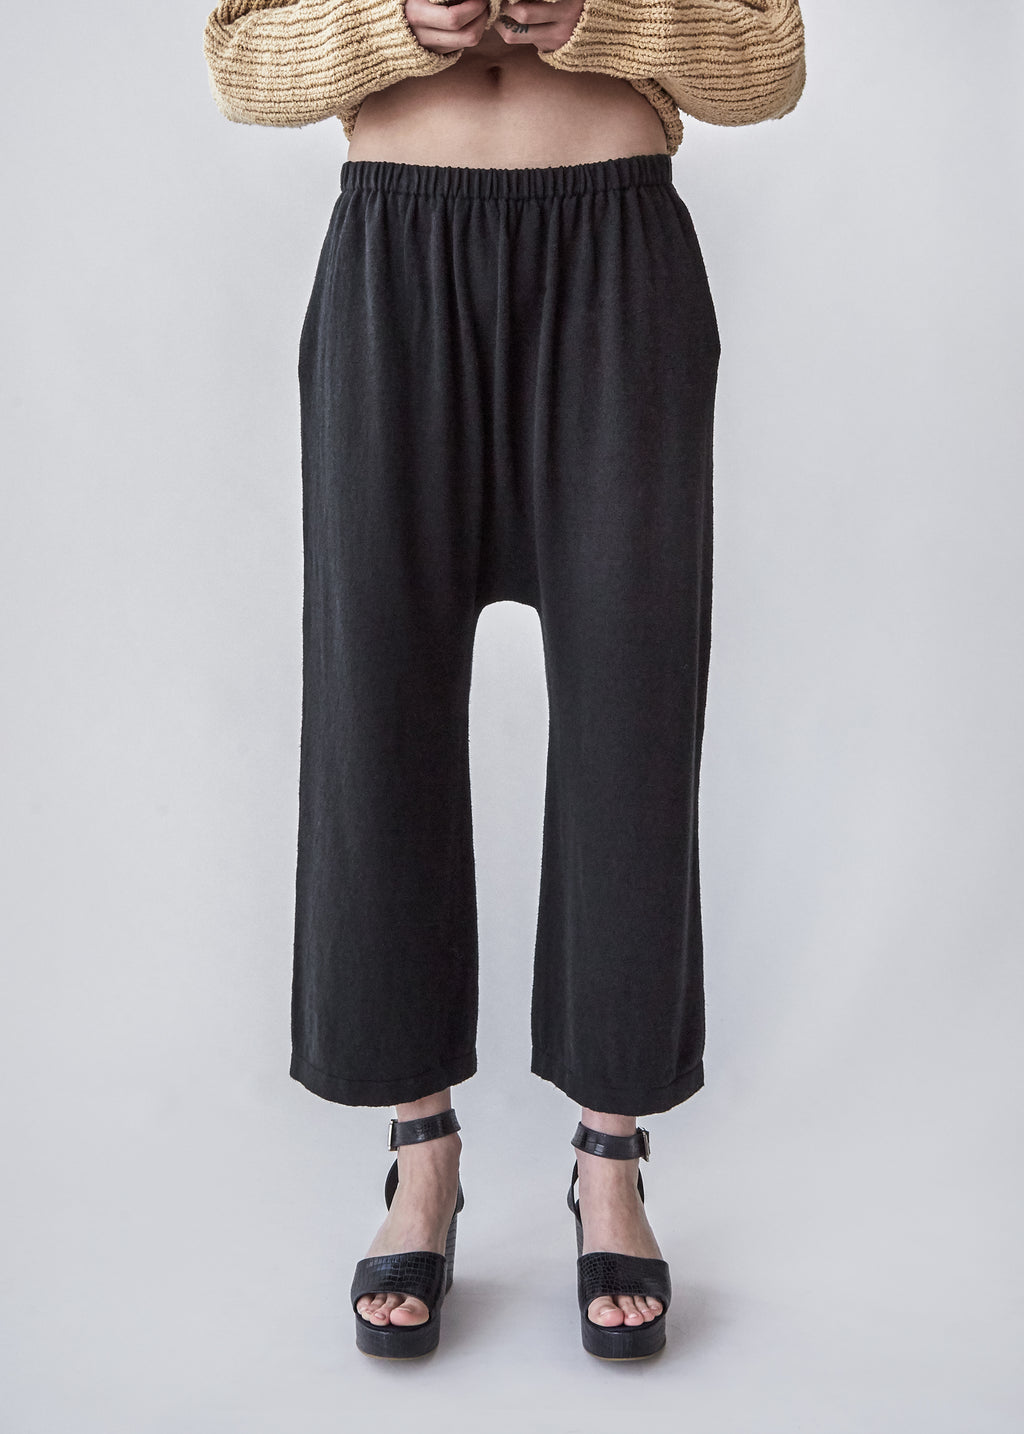 Peg Pants in Coal - SOLD OUT